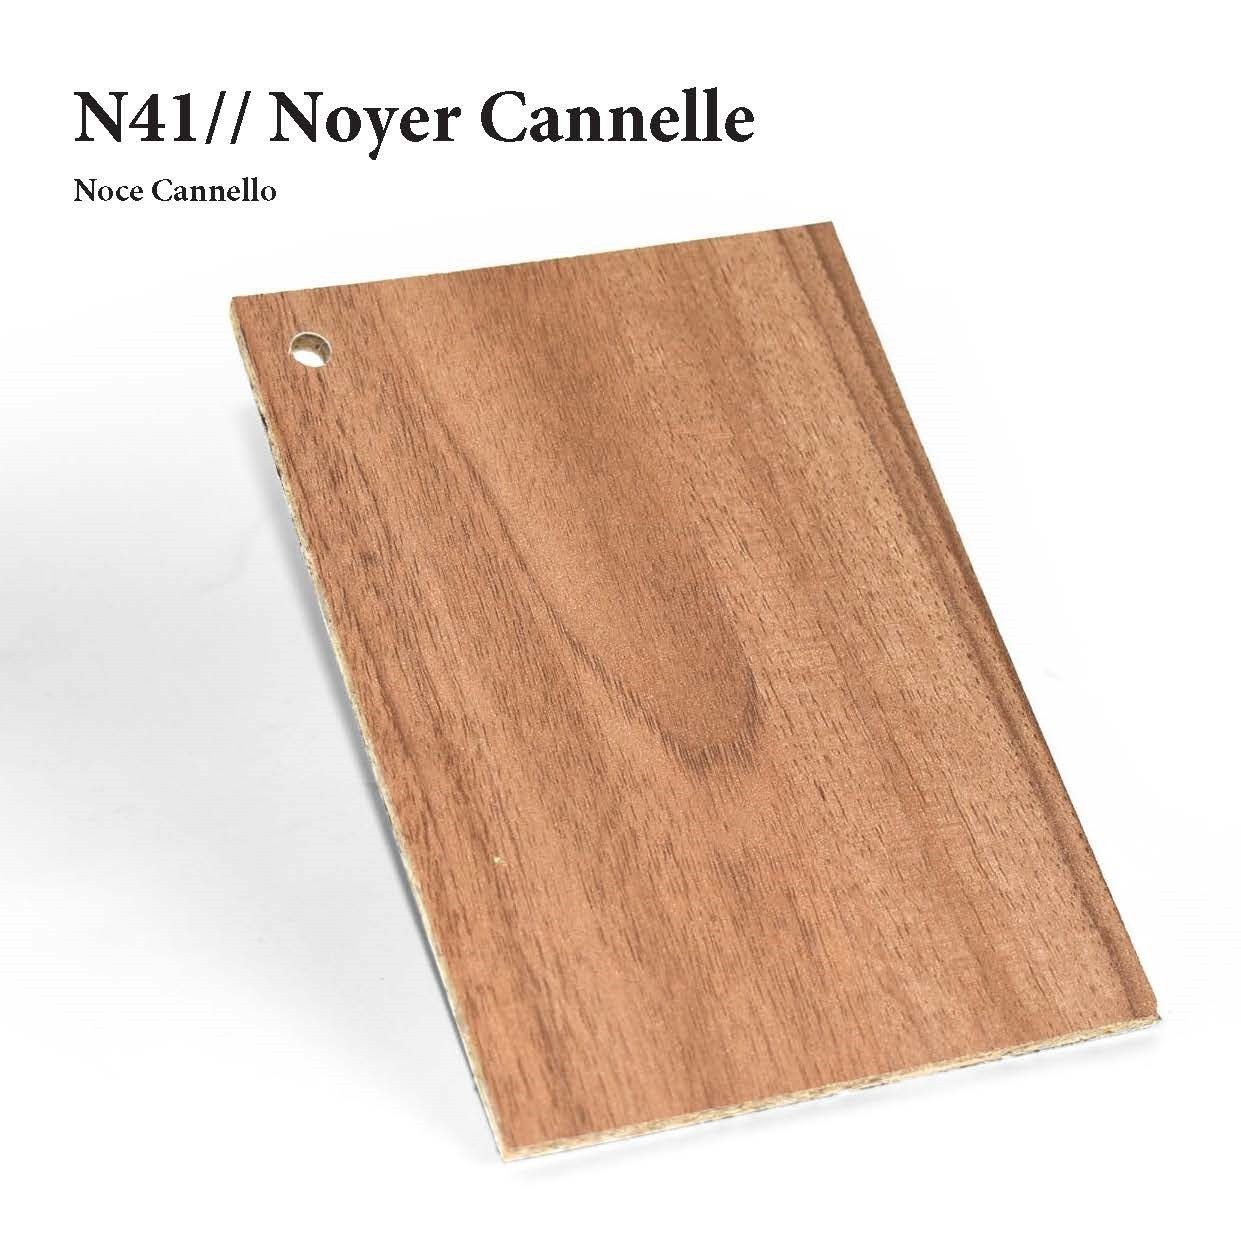 Noyer Cannelle N41